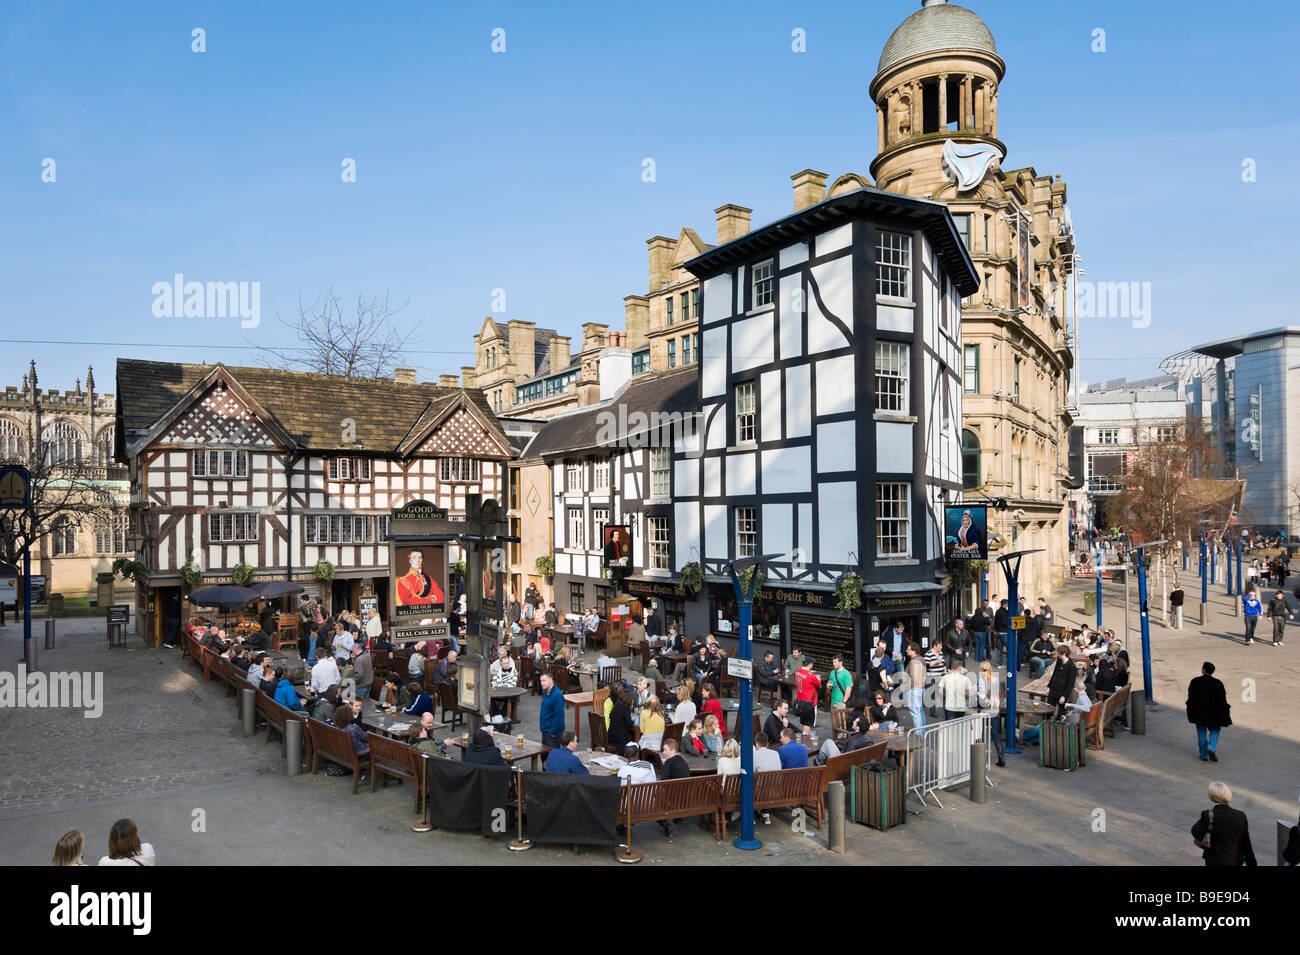 The Old Wellington Inn and Sinclair's Oyster Bar, Cathedral Gates, Exchange Square, Manchester, England Stock Photo